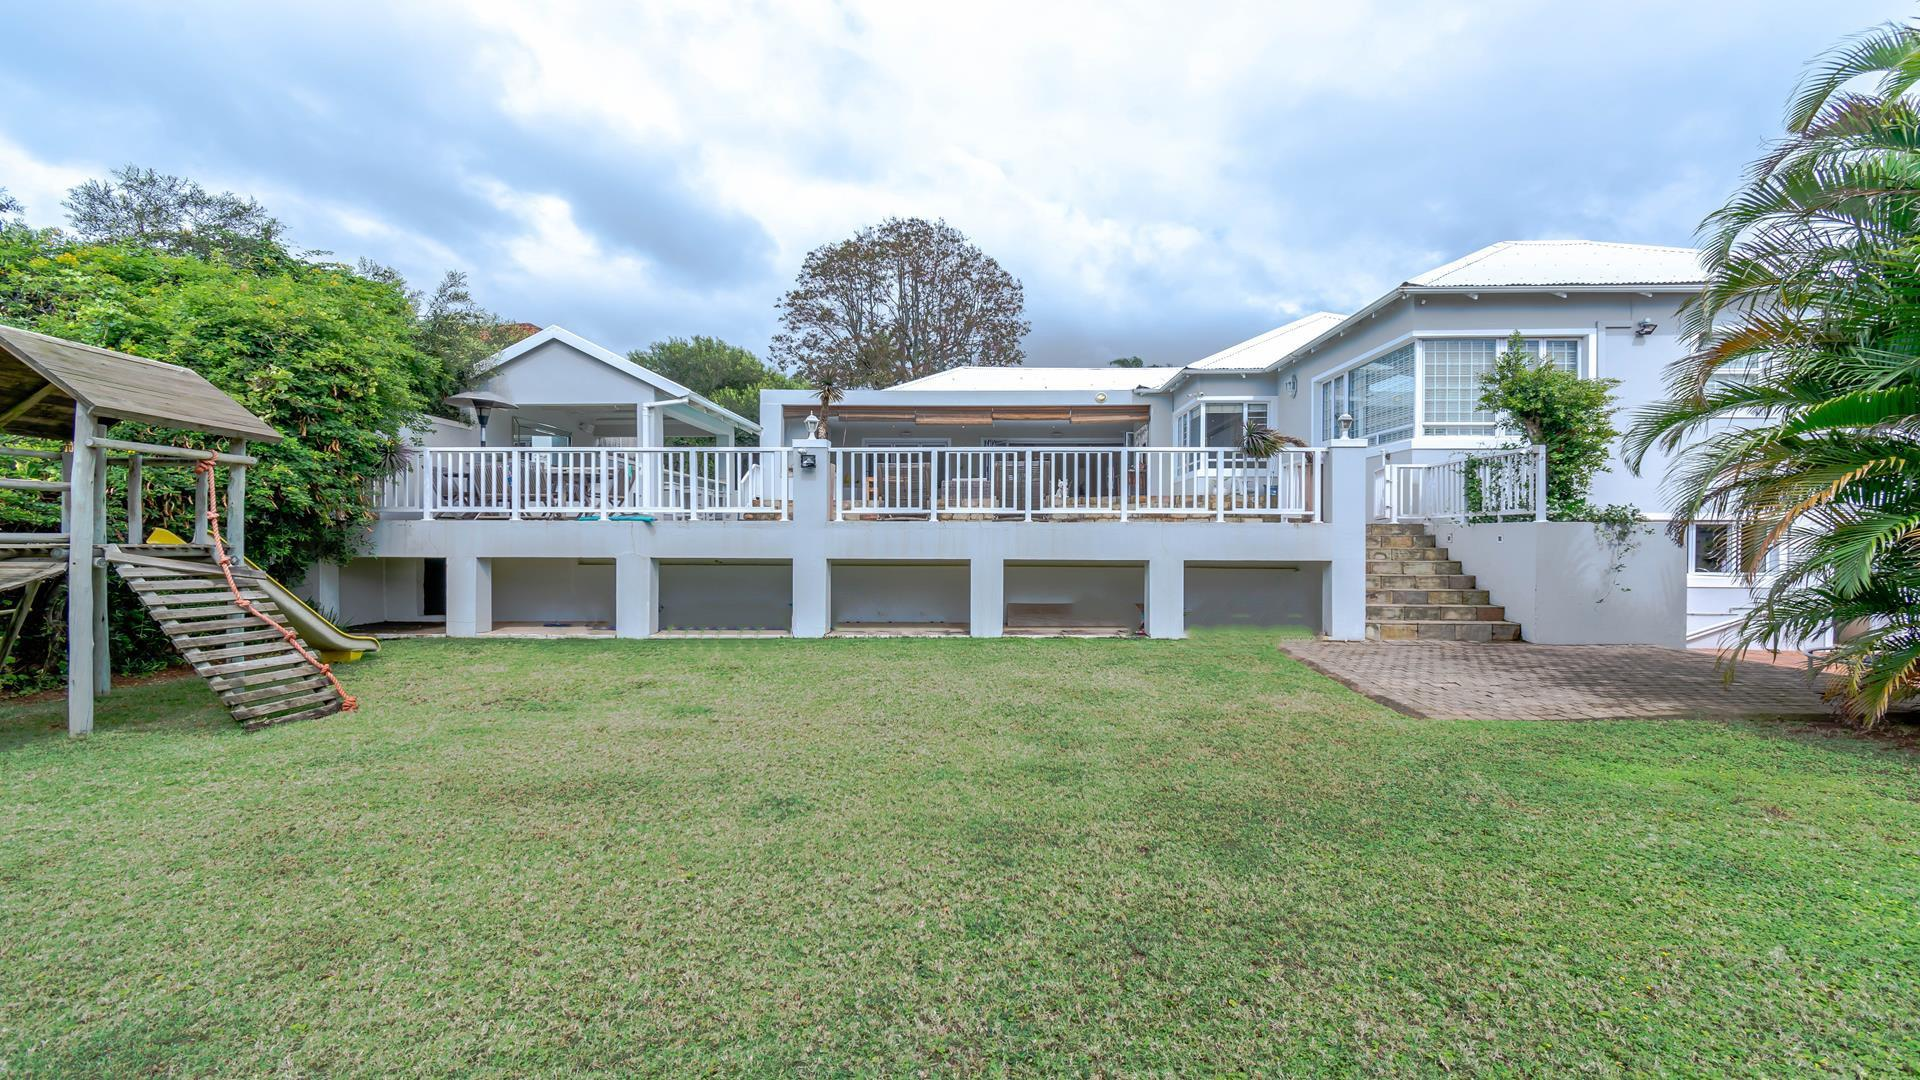 4 bedroom house for sale in durban north  remax™ of